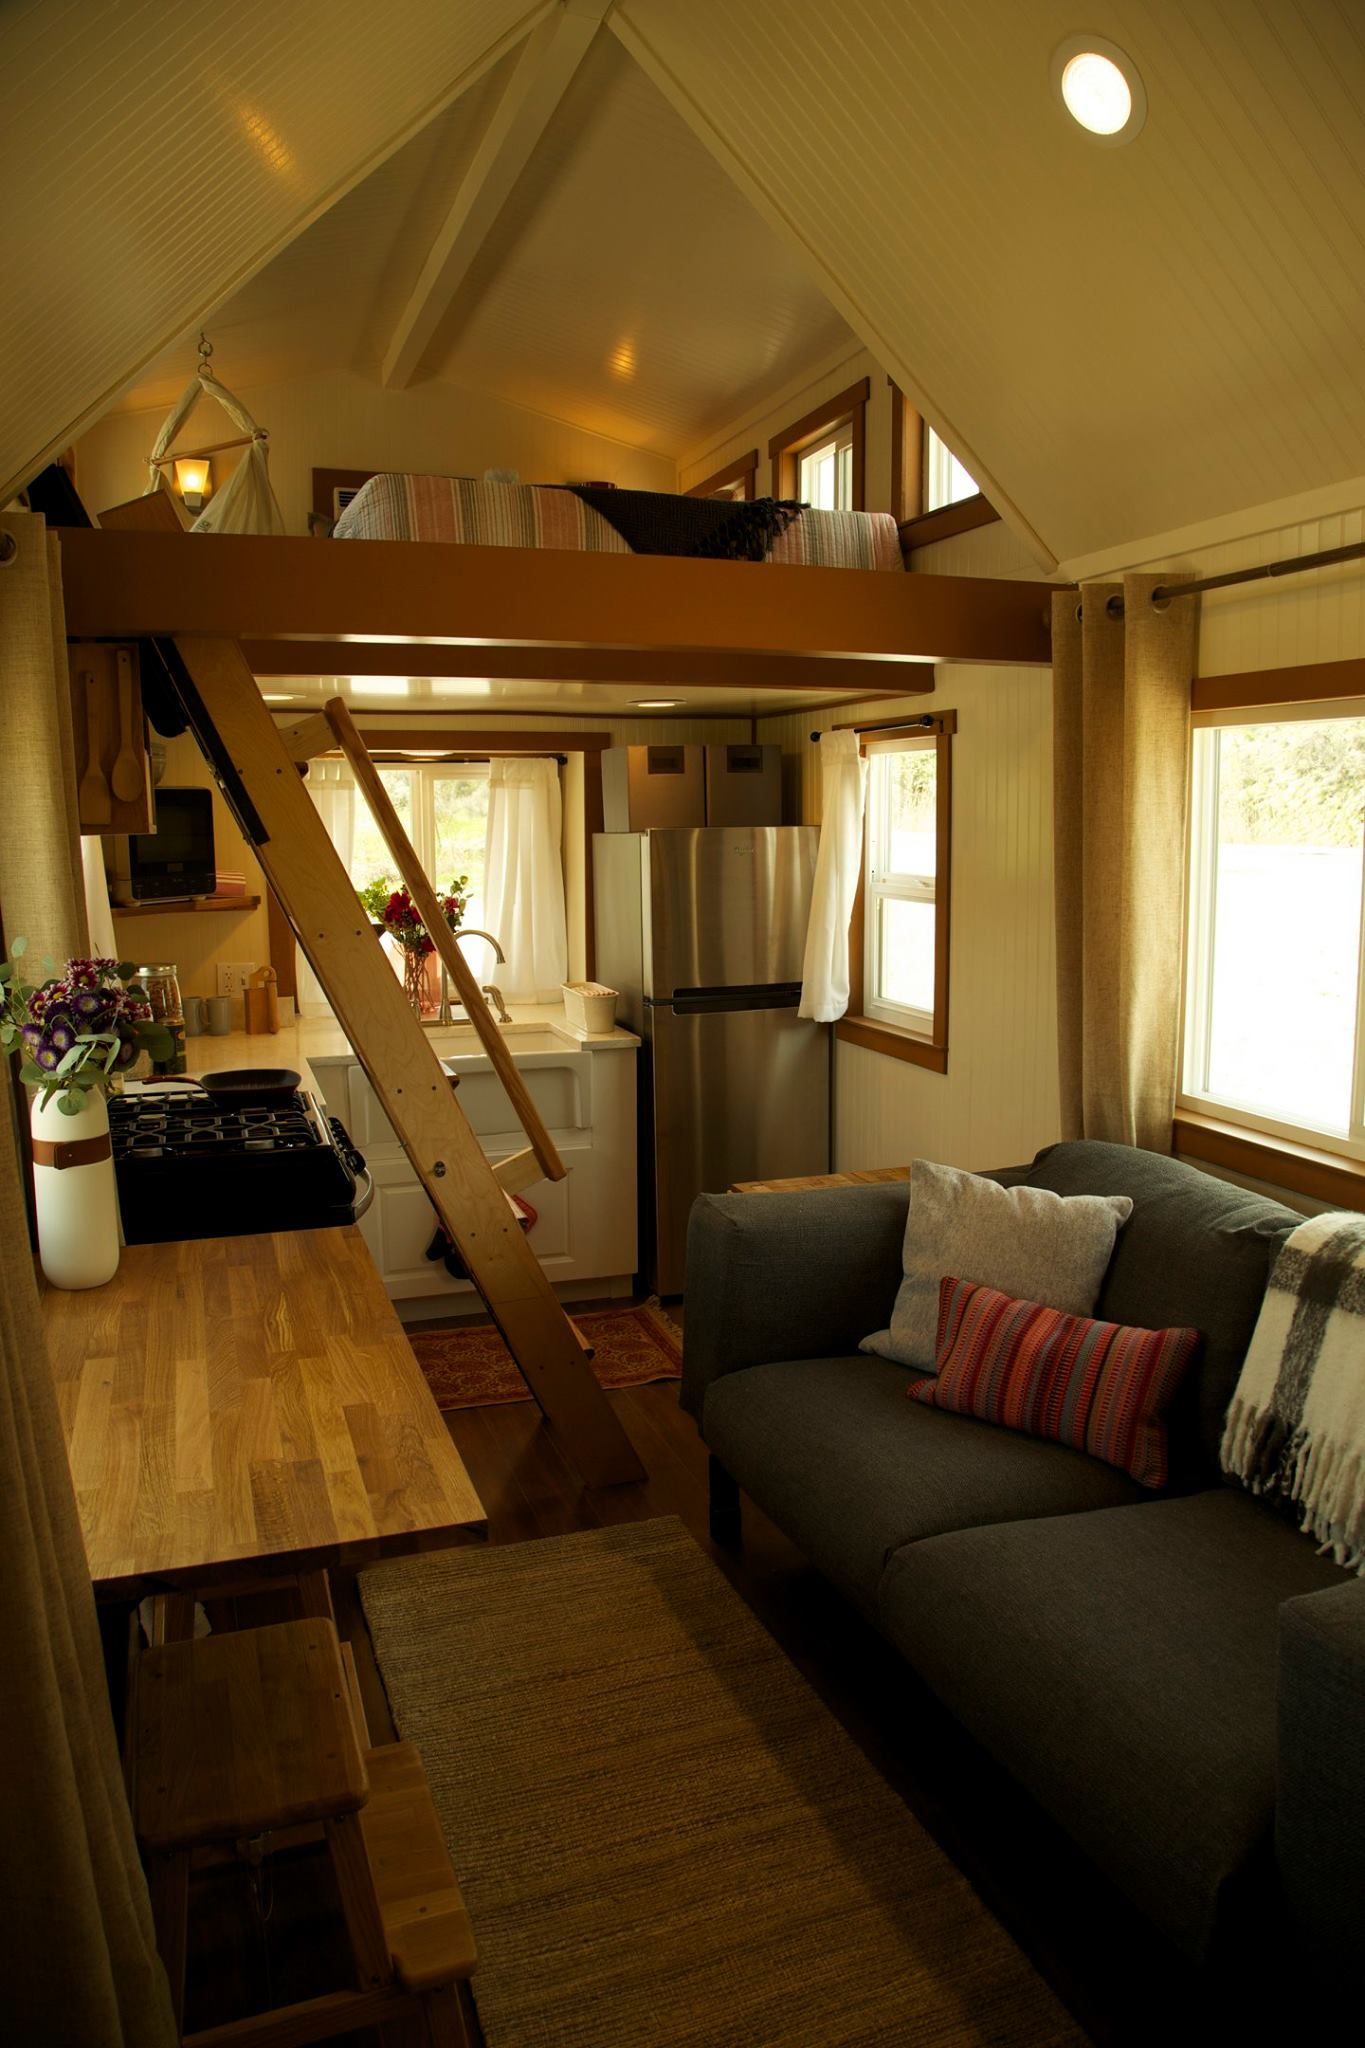 300 Sq Ft Incl Lofts Custom Craftsman On Wheels